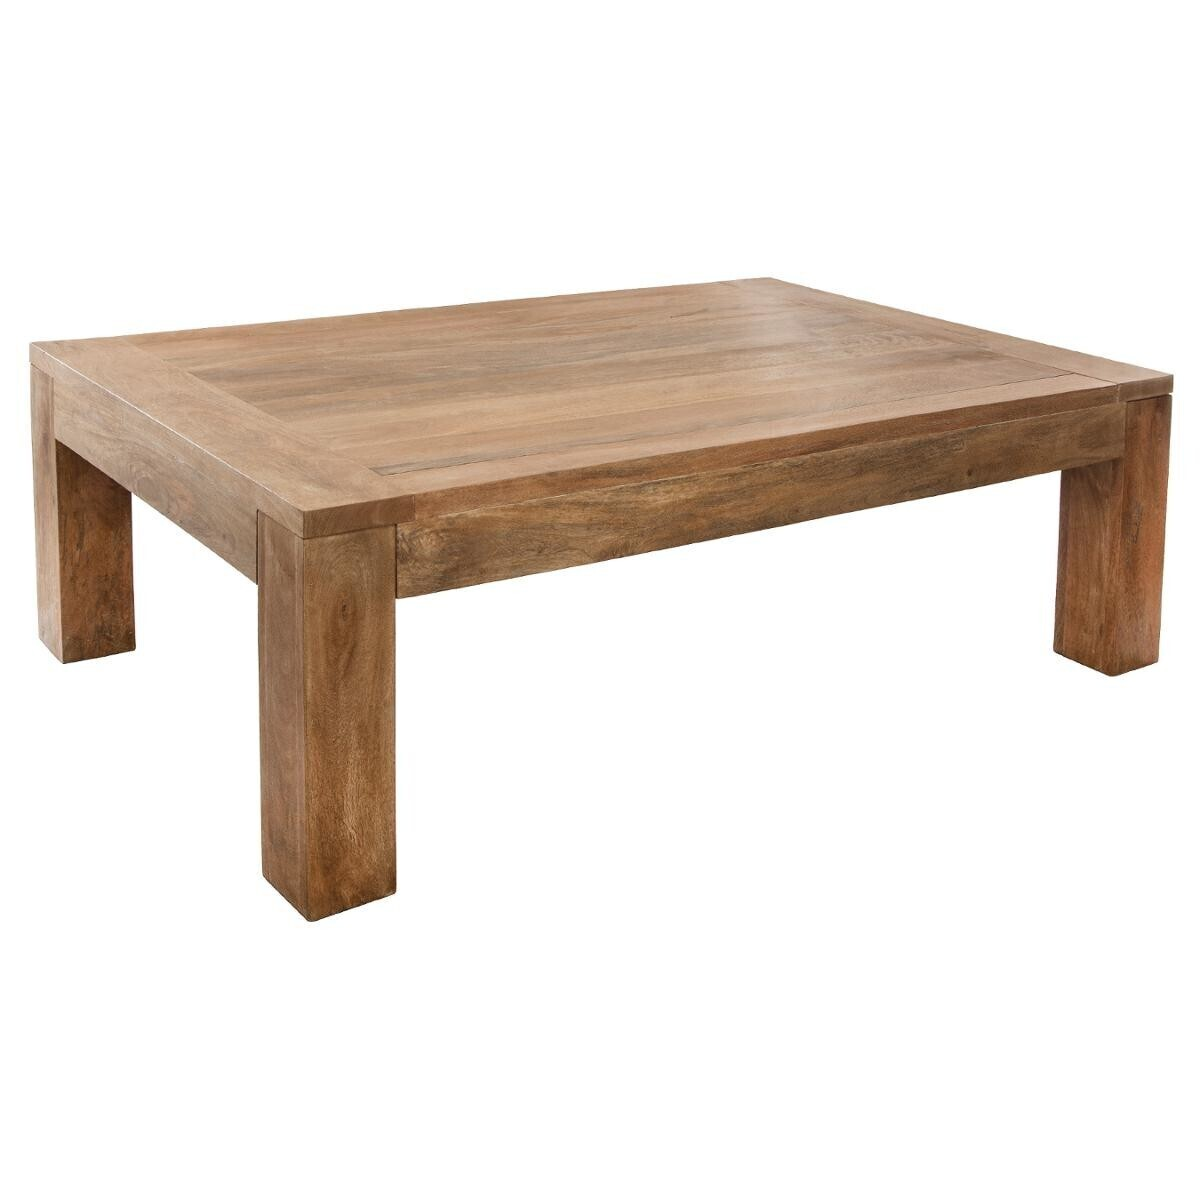 table basse ajmal bois de manguier